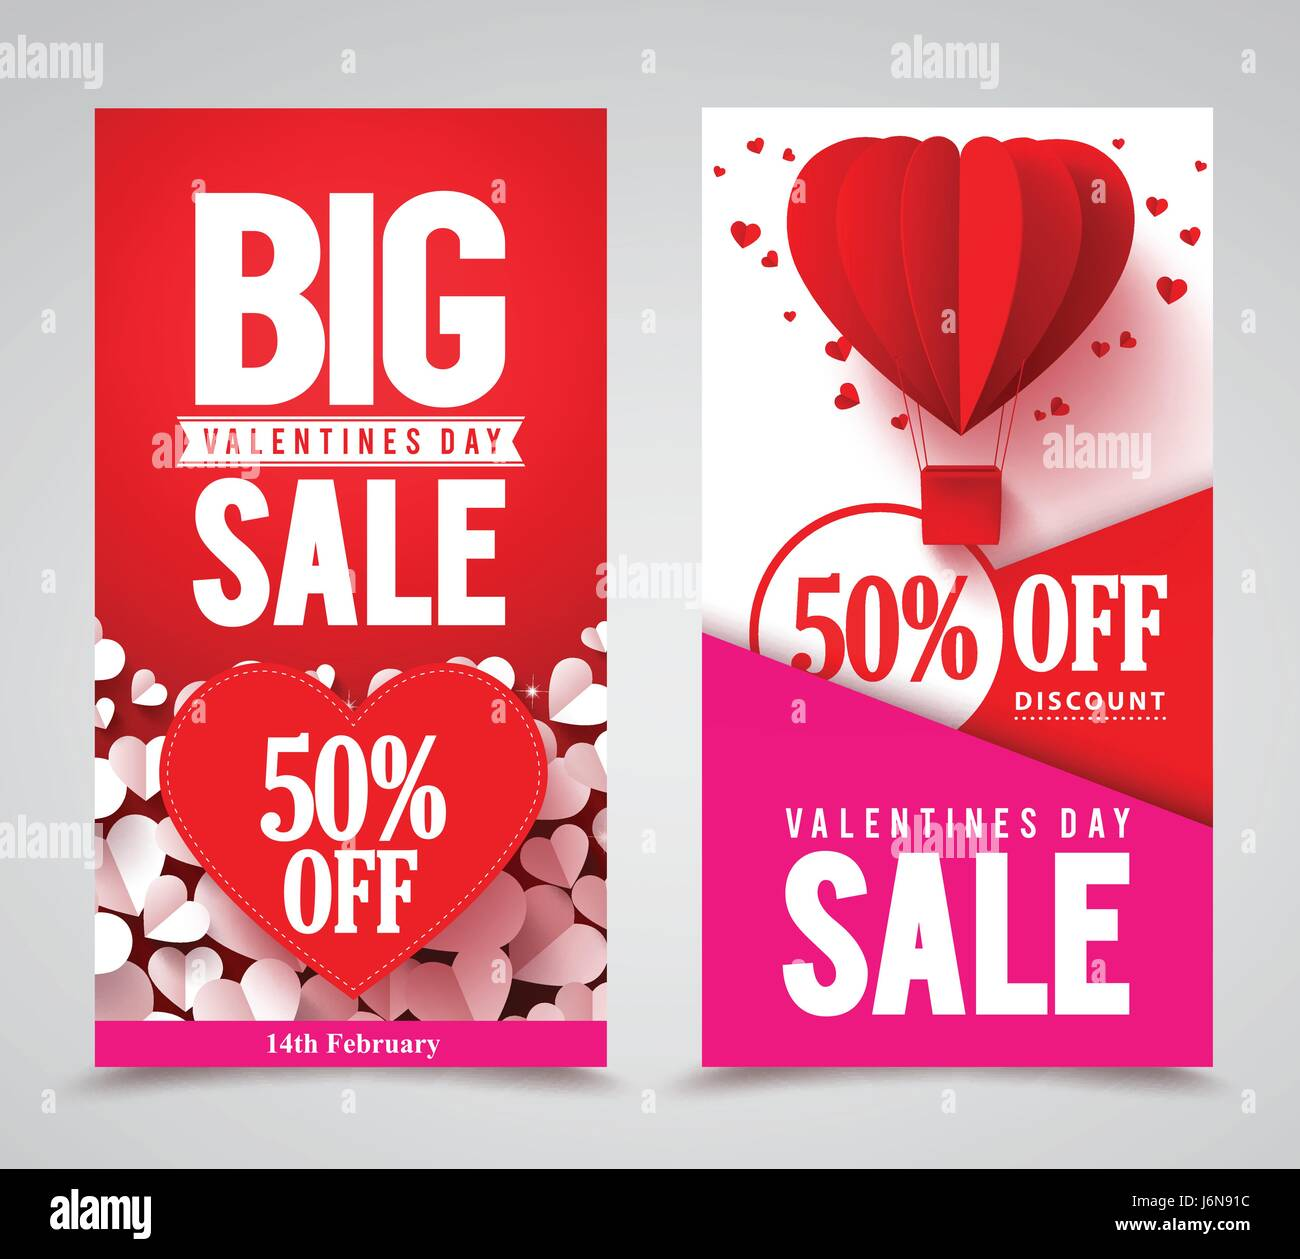 valentines day sale vector poster designs and web banners with red hearts elements for store promotion vector illustration